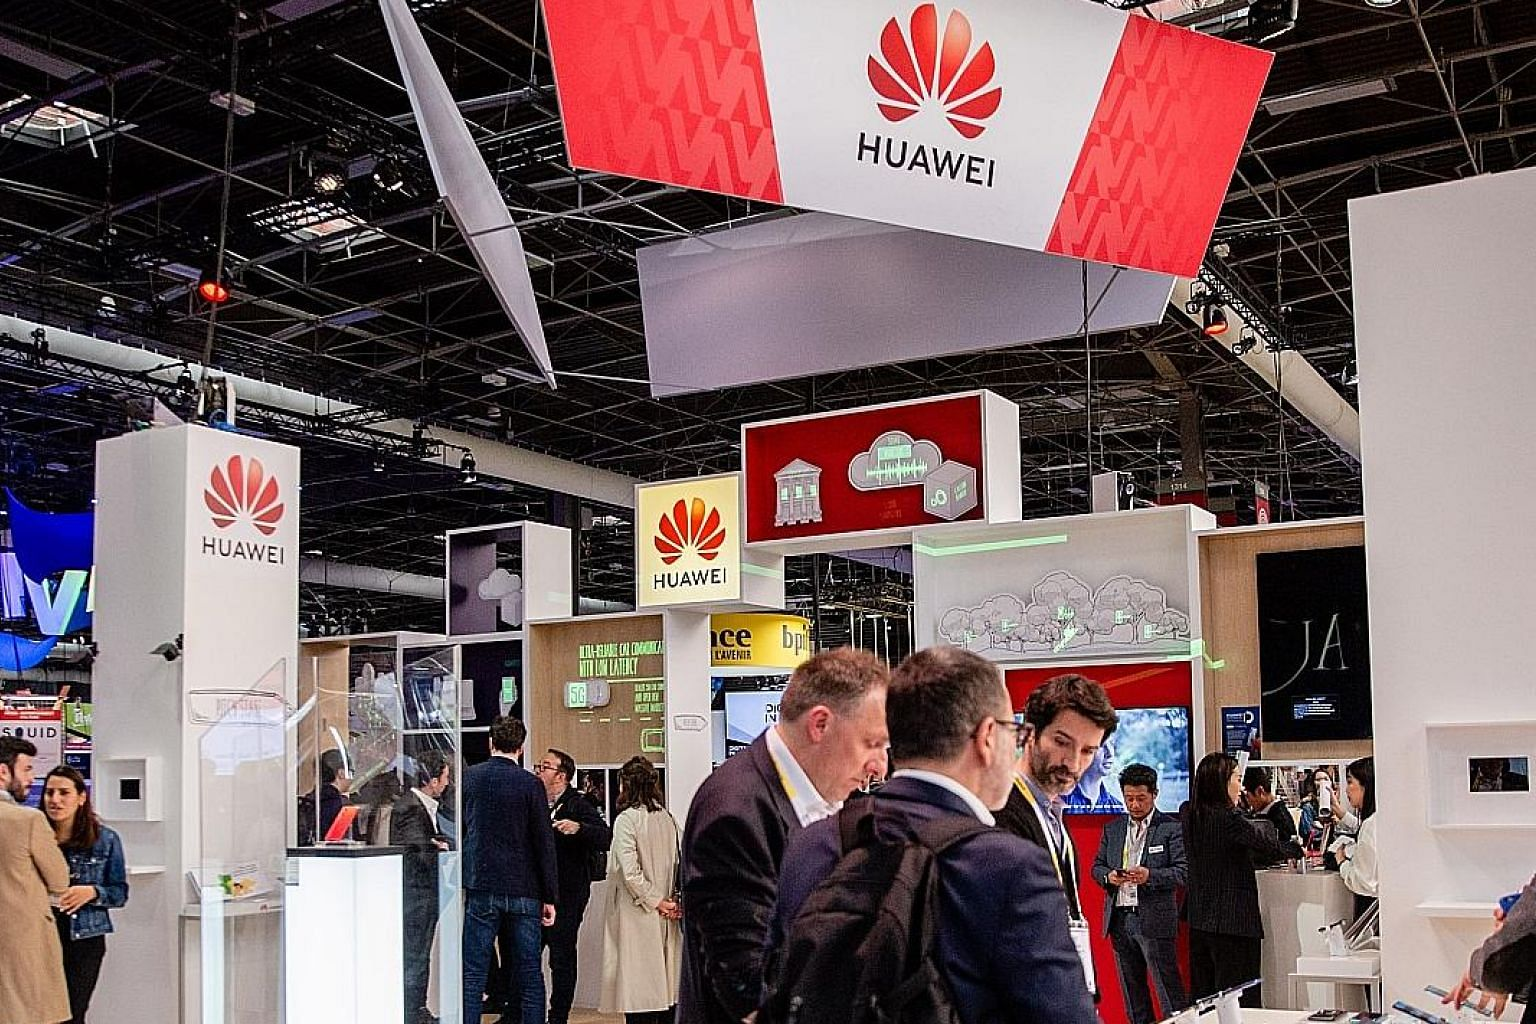 """Left: Huawei Technologies' booth at the Viva Technology conference in Paris last Thursday. Its founder and chief executive Ren Zhengfei (above) said the growth of the Chinese tech giant """"may slow, but only slightly"""" due to the US restrictions."""